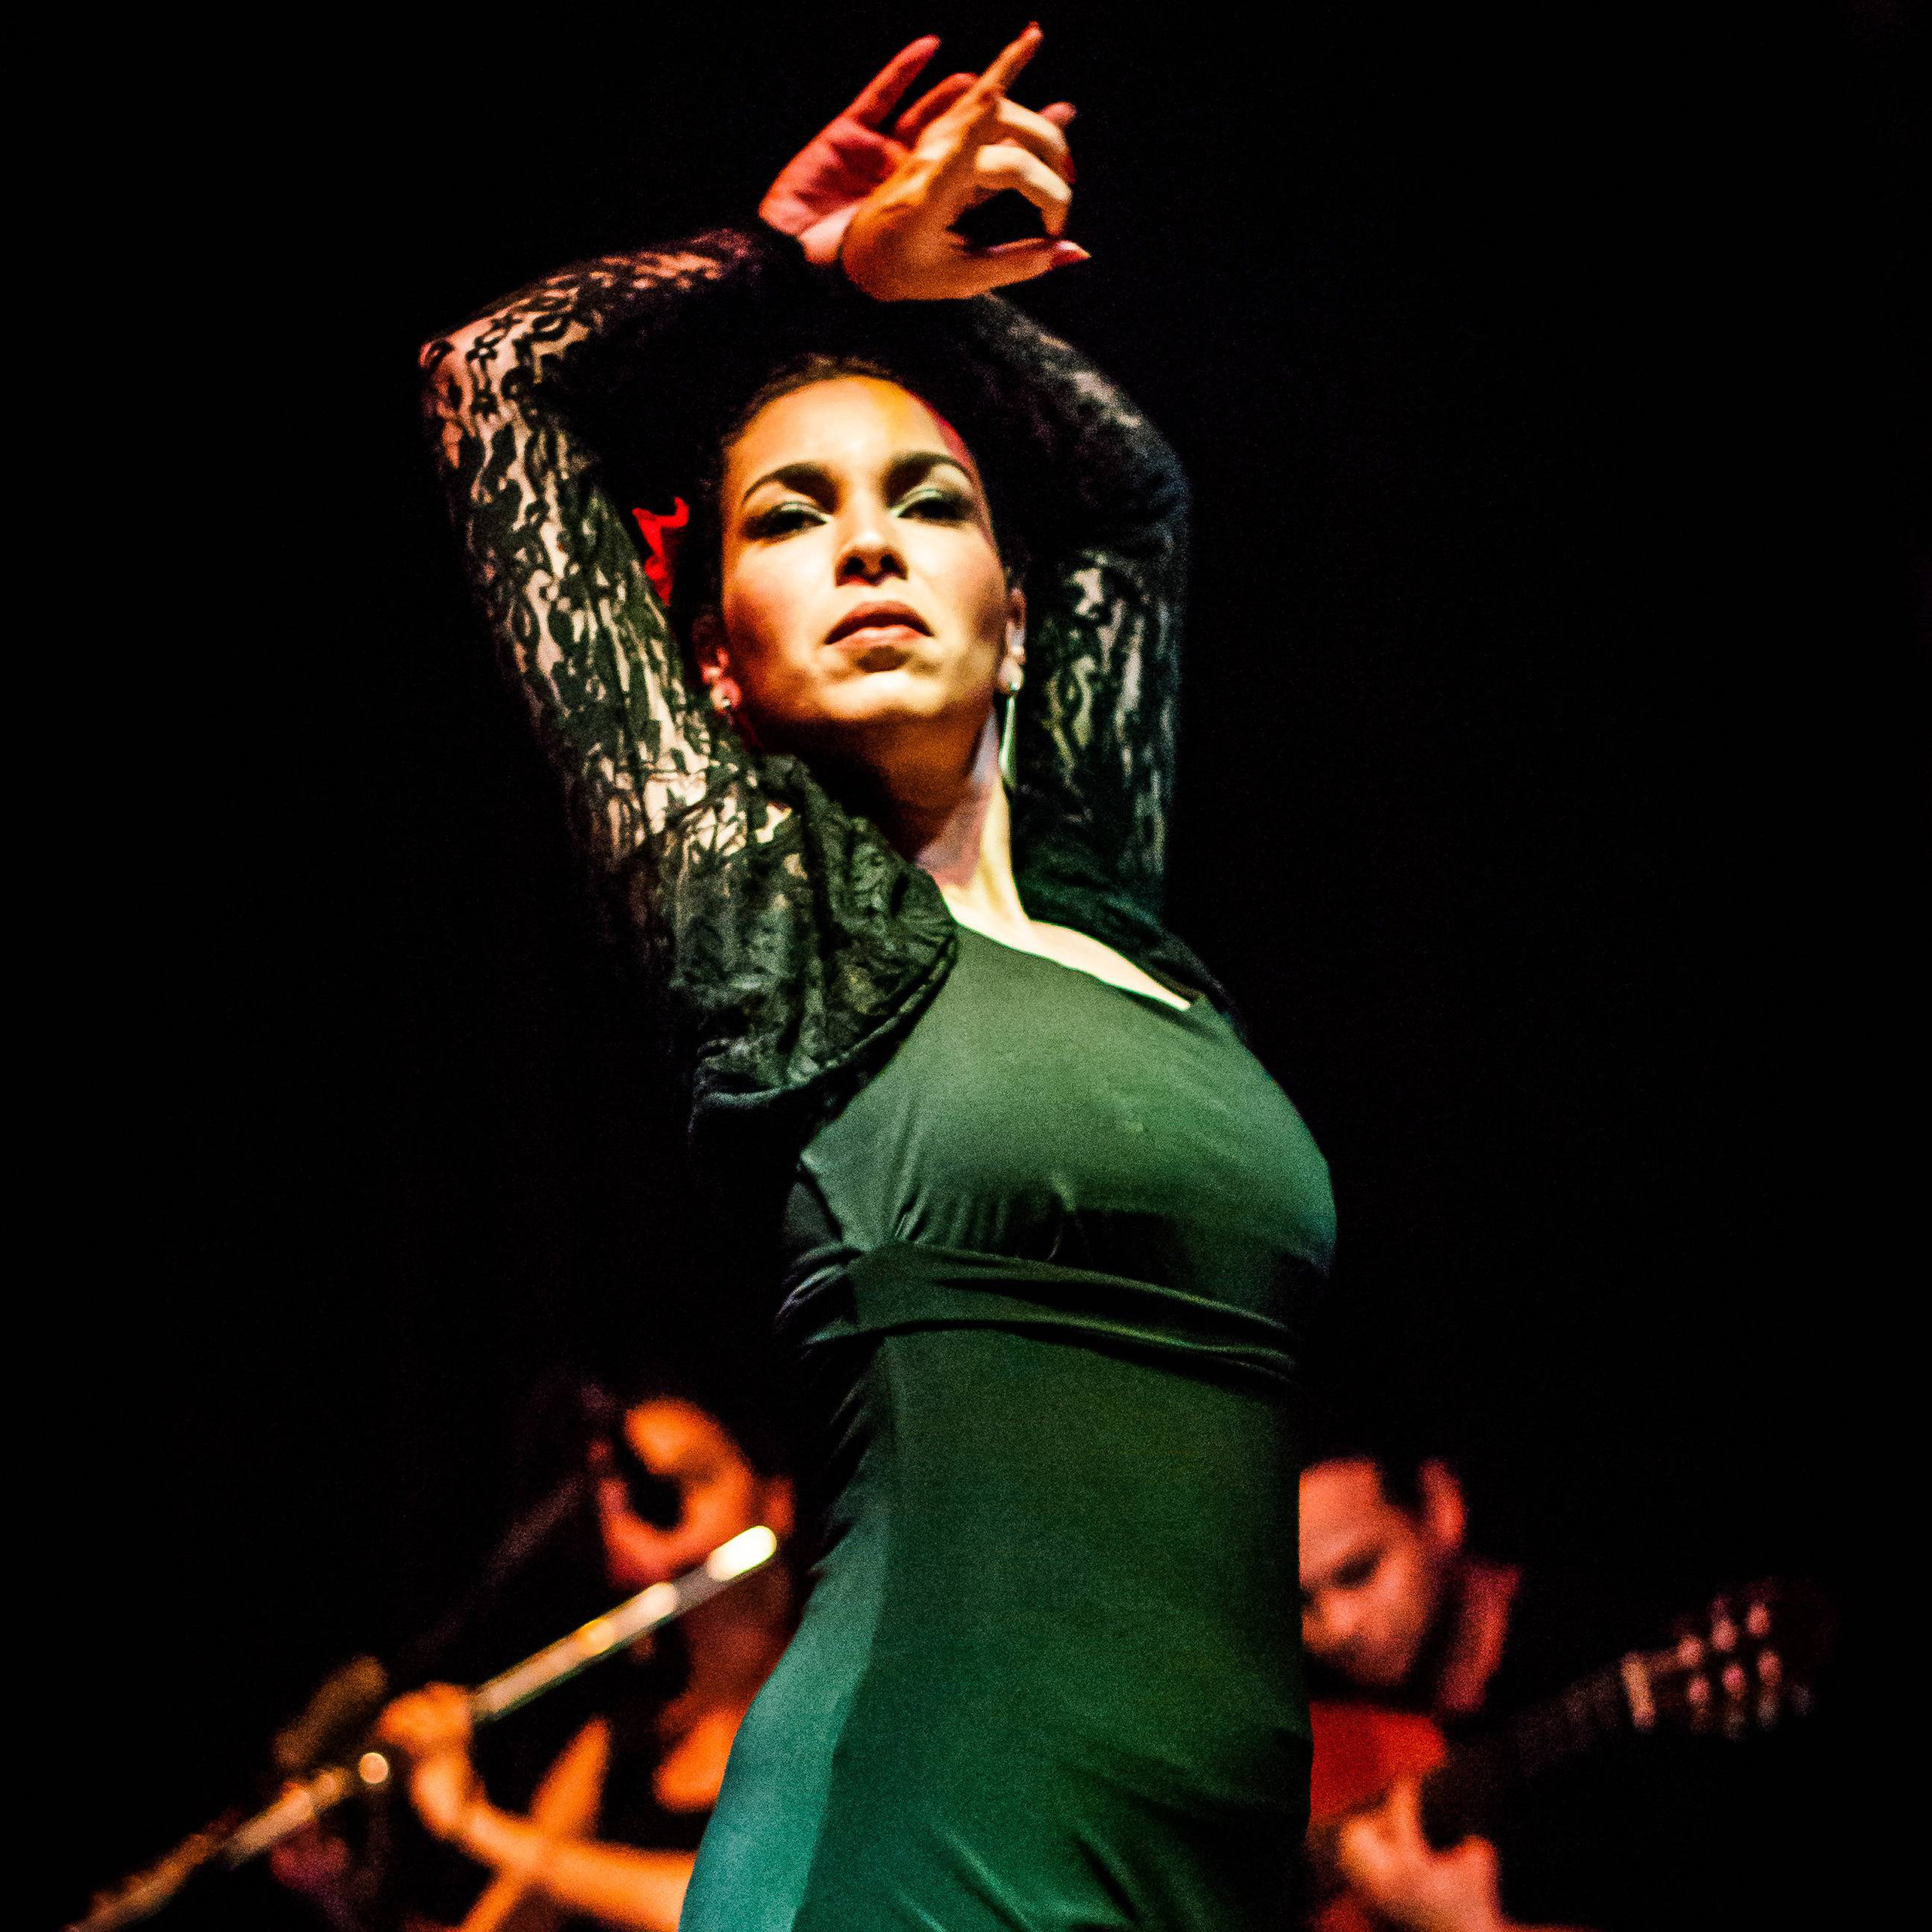 "LORENNA EUNAPIO - Flamenco Dance  Lorenna Eunapio began to study dance at the age of 5, starting with classical ballet in Brazil. Her background also includes tap dance, street, jazz, ballroom dance, and Flamenco, which she started with ten years old and got professionalized at the age of 19. Her main  maestros  were the Brazilians Ricardo Samel and Maria Thereza Canário. In Spain, she studied with La Truco, Miguel Canãs, Juana Amaya and María Juncal, and she also took several workshops with Spanish maestros such as Domingo Ortega, Inmaculada Ortega, Carmen La Talegona, Concha Jareño, Belén Maya, Manuel Reyes, Pol Vaquero, Isaac de los Reyes, Manuel Liñan, and Rafaela Carrasco, to name a few.  Lorenna worked as a  maestra  from 2004 to 2018 in several dance schools in Rio de Janeiro, Brazil. She danced professionally at Raga Group (fusion dance) from 2005 to 2006, at Maria Thereza Canário Dance Company from 2009 to 2018, in special shows with Spanish  bailaores  such as Pol Vaquero, Isaac de los Reyes and Domingo Ortega, and as a solo artist in several  tablaos  in Brazil.  As a Flamenco enthusiast, Lorenna led the ""Flamenco in Rio"" project for many years, including the organization of more than 25  tablaos  and a Flamenco blog, which is still online.  In Canada, Lorenna is a student of the Academy of Spanish Dance, led by the  maestra  Esmeralda Enrique."